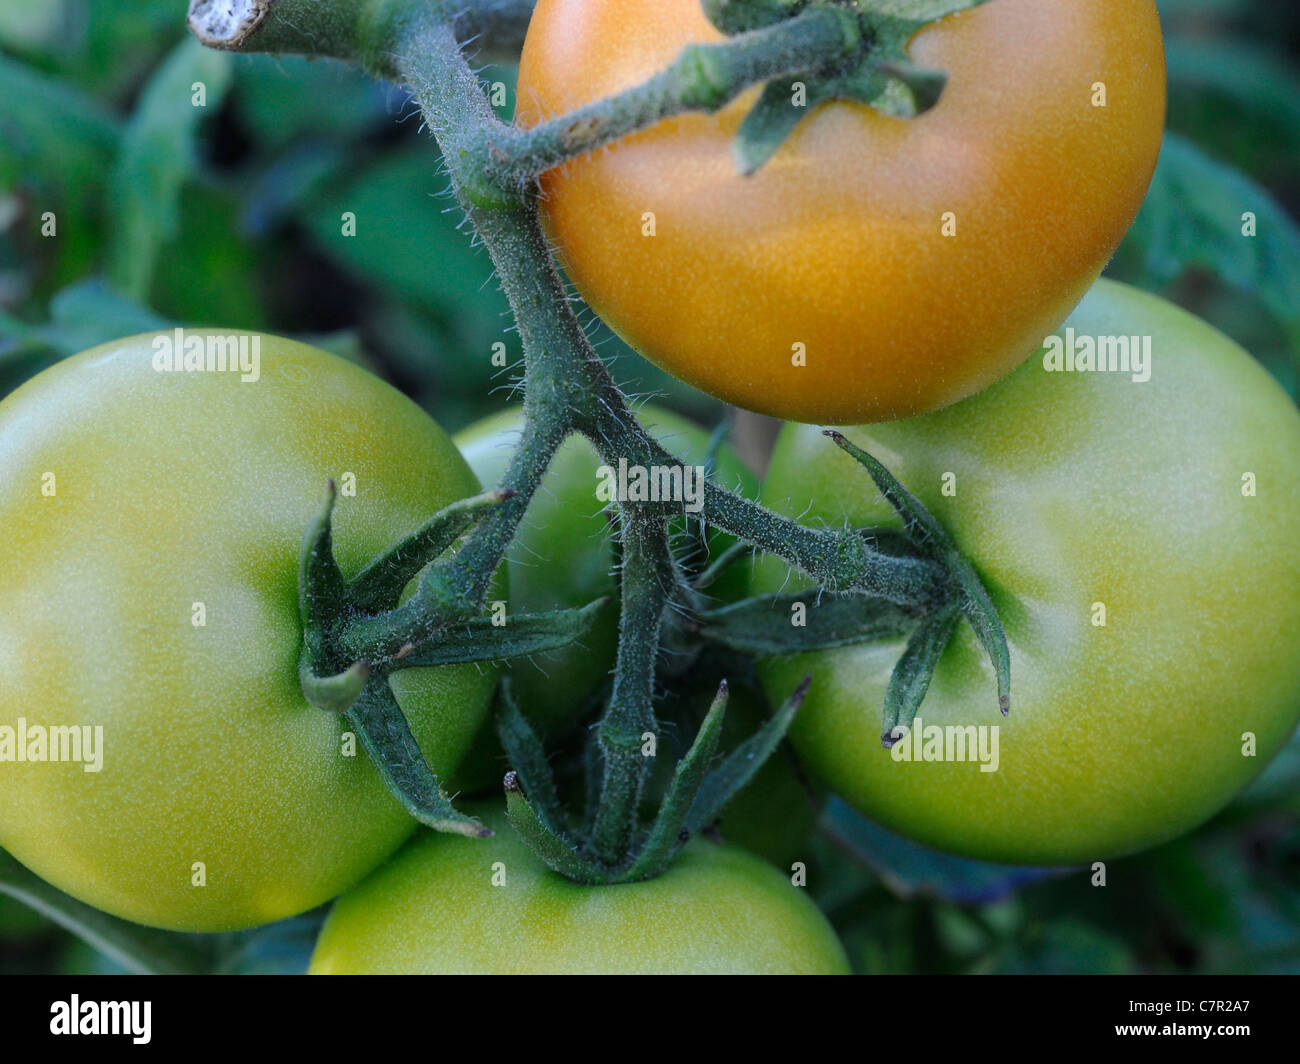 Ripening tomatoes growing on the vine - Stock Image